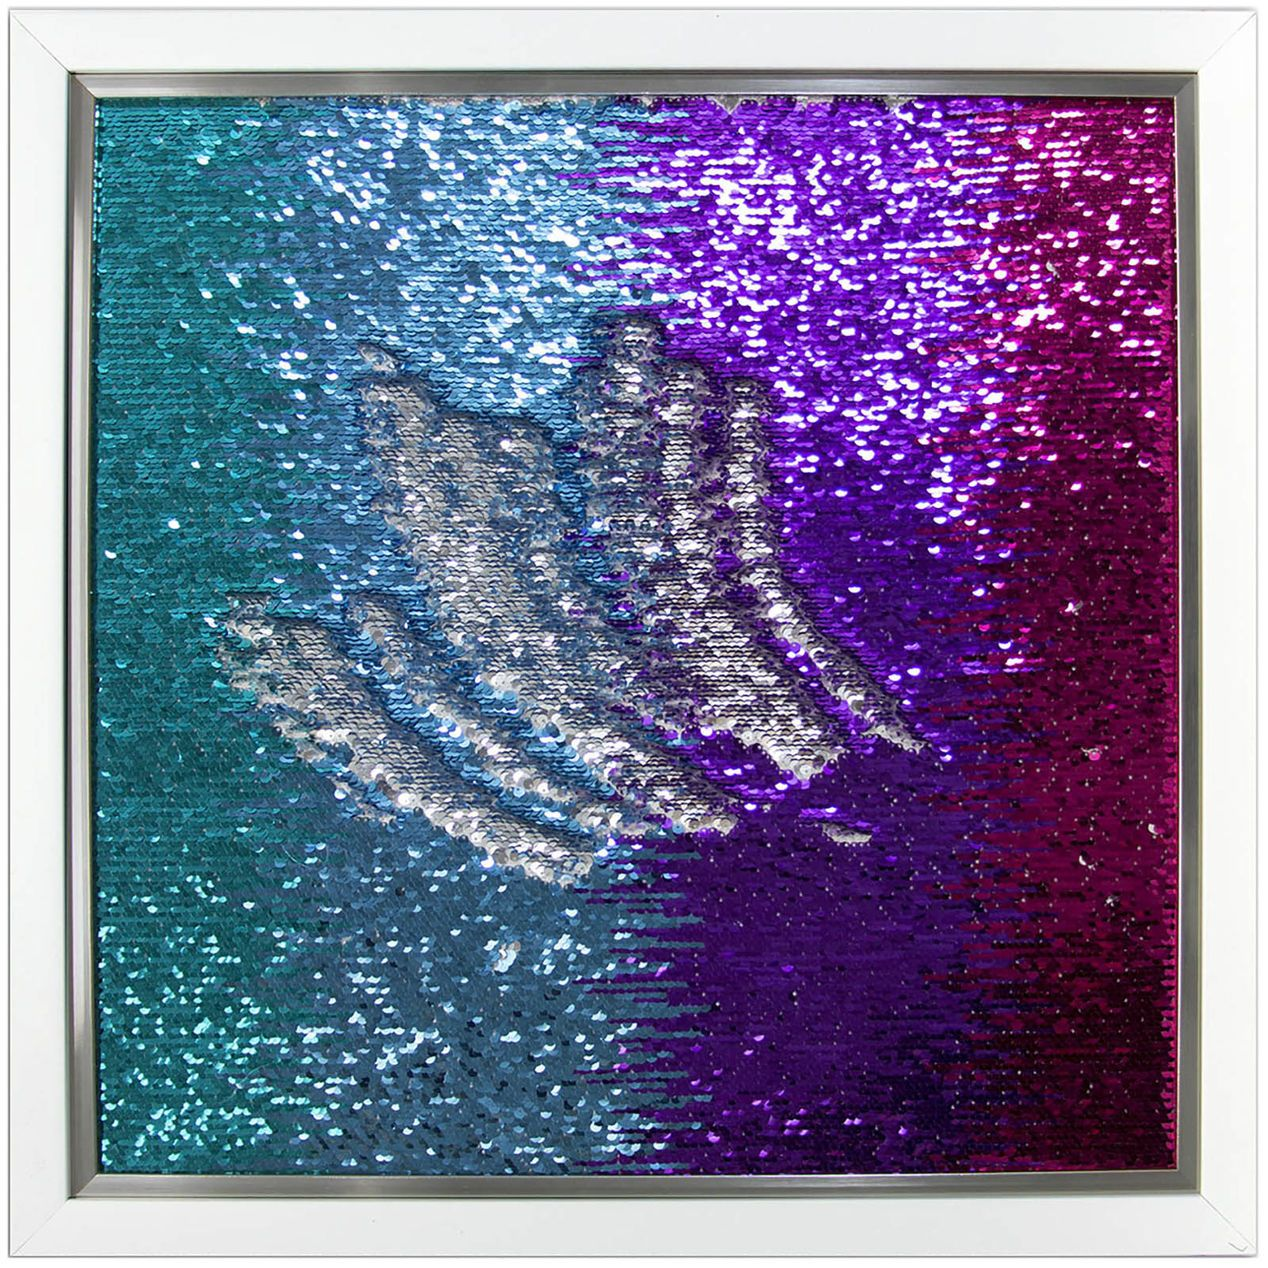 Blue Purple Mermaid Sequin Wall Art 20 X 20 In At Home Sequin Wall Mermaid Home Decor Mermaid Sequin